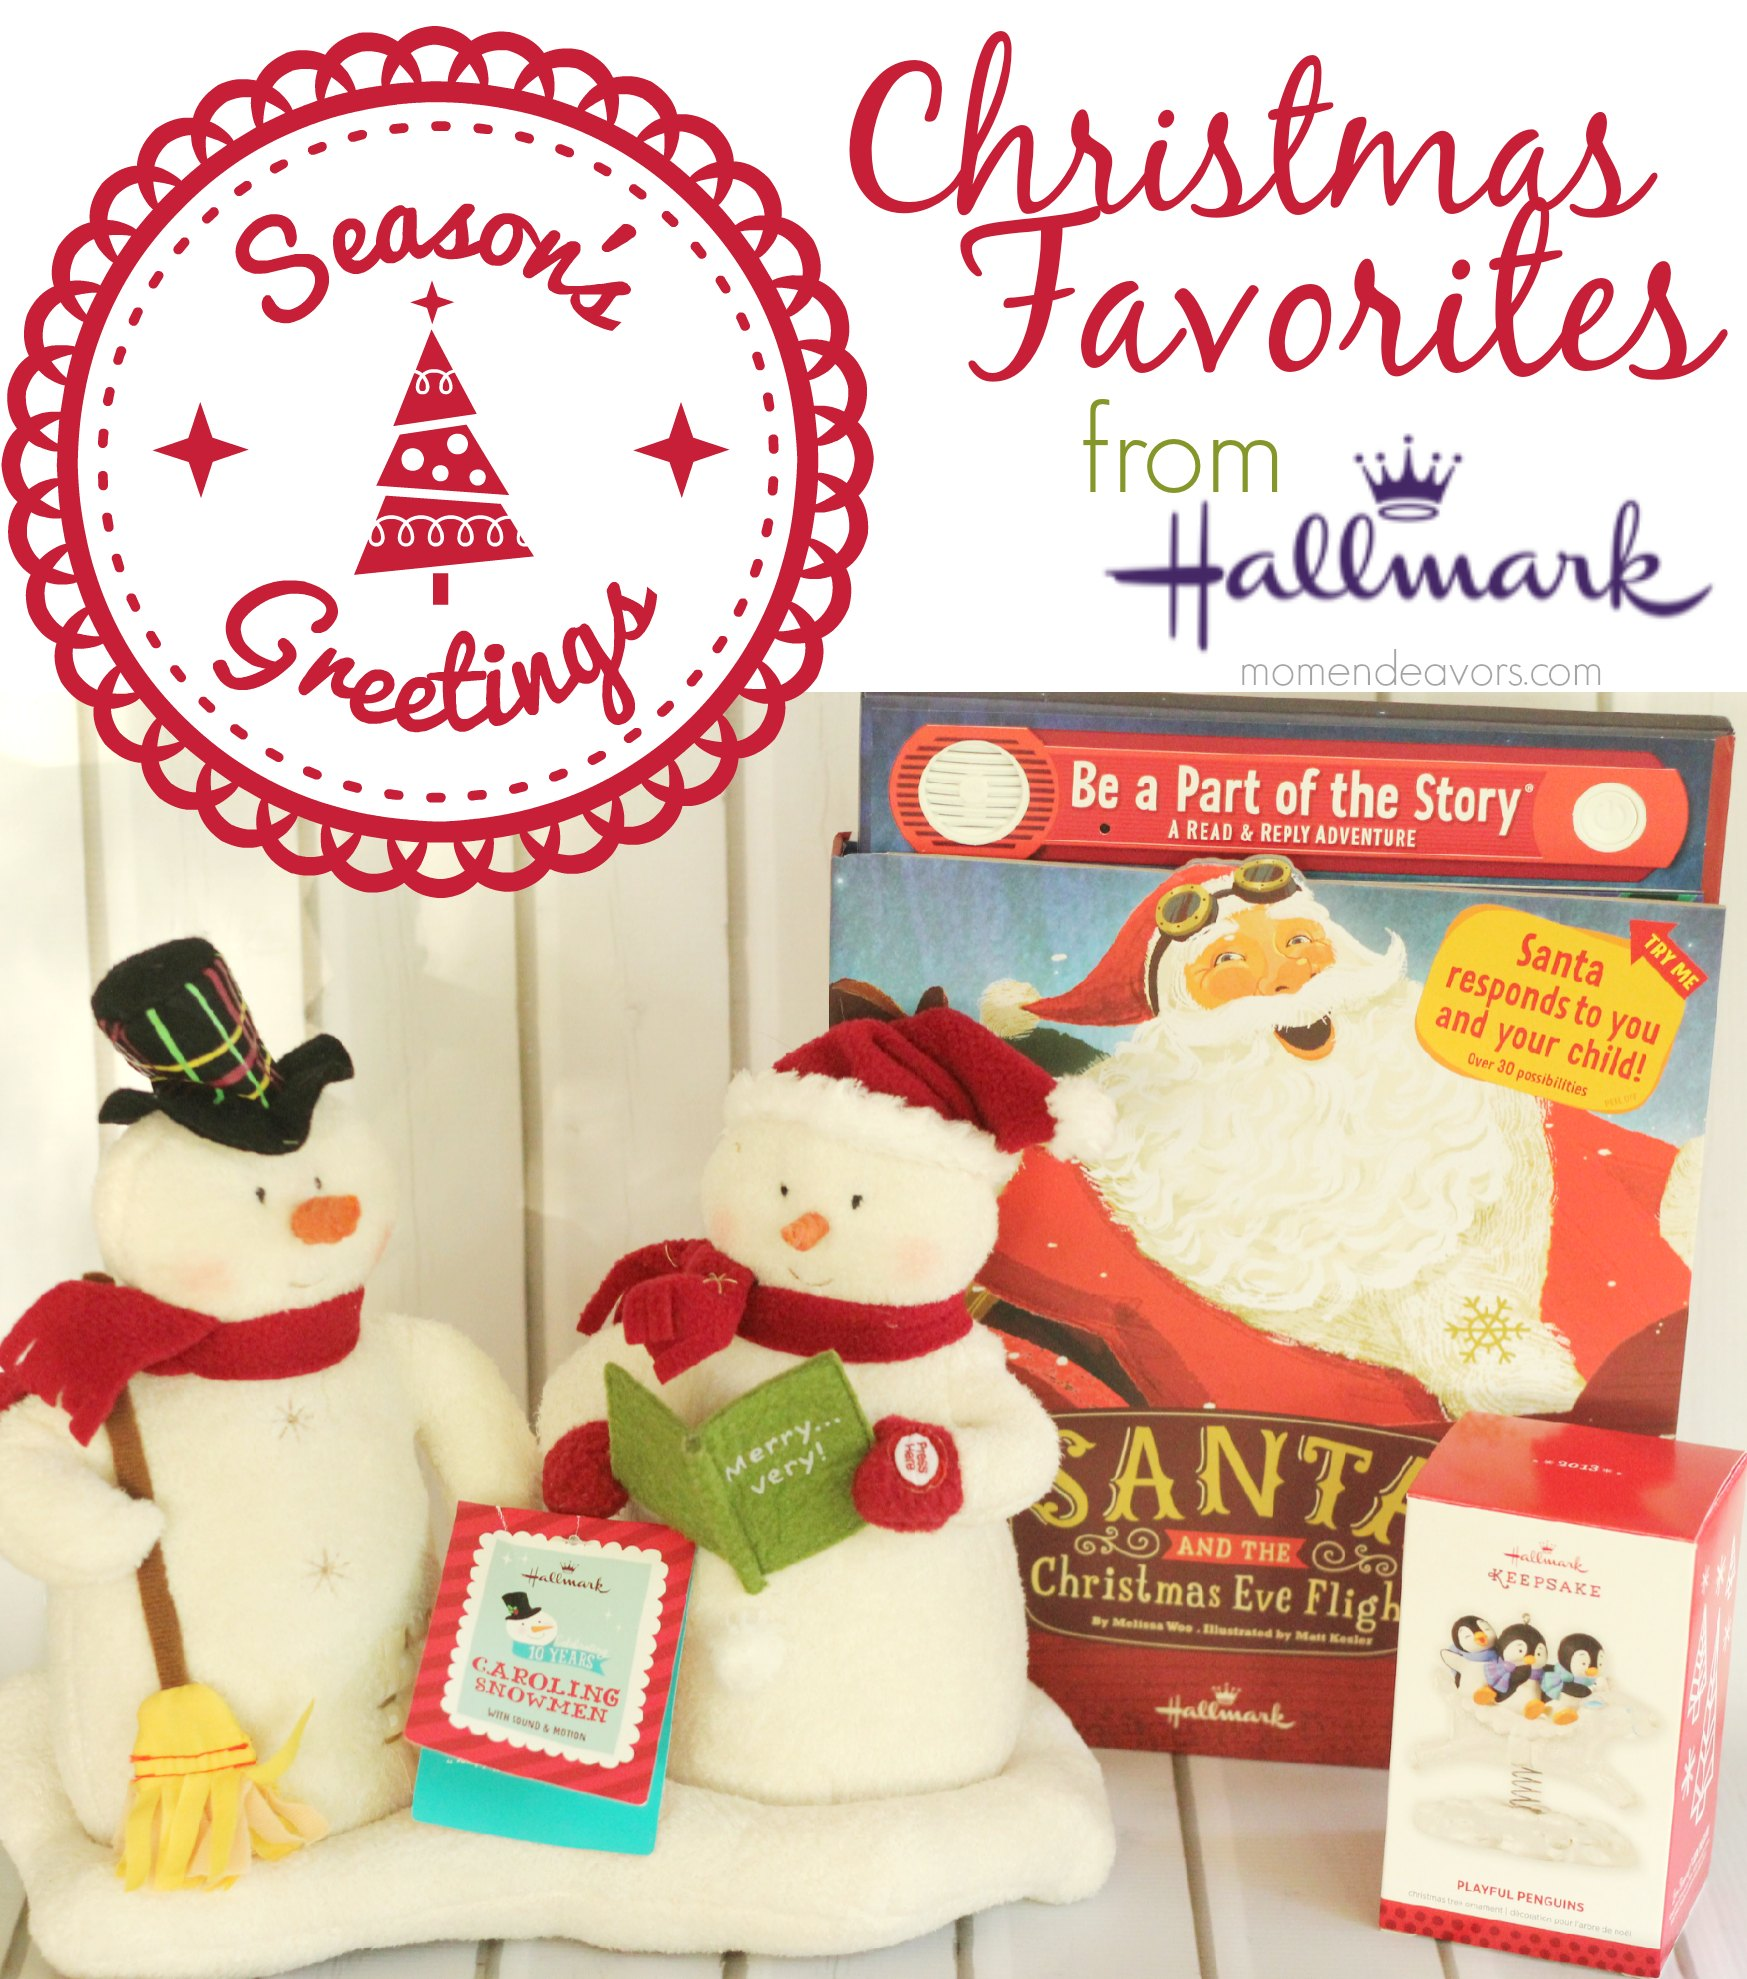 Favorite Hallmark Christmas Products